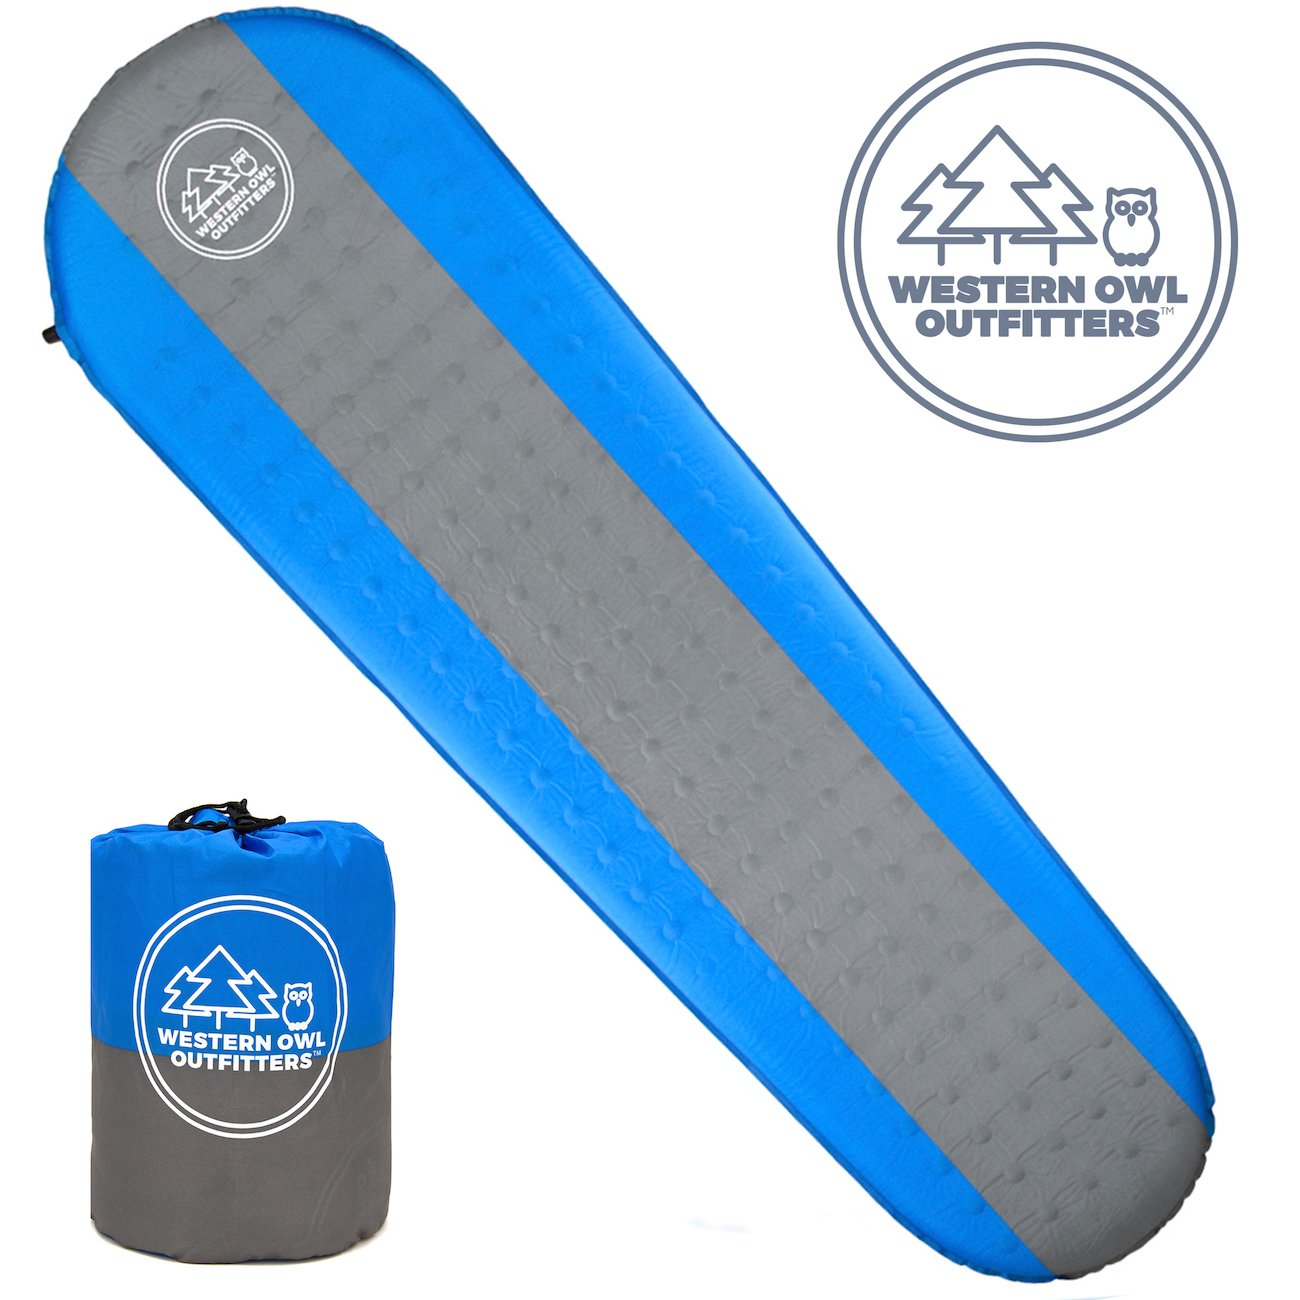 Best Self Inflating Sleeping pad Lightweight Camping Foam pad- Best for Camping Backpacking & Hiking. R Value of 4.9 - Inflatable Camping Mattress by Roman Trail Outfitters